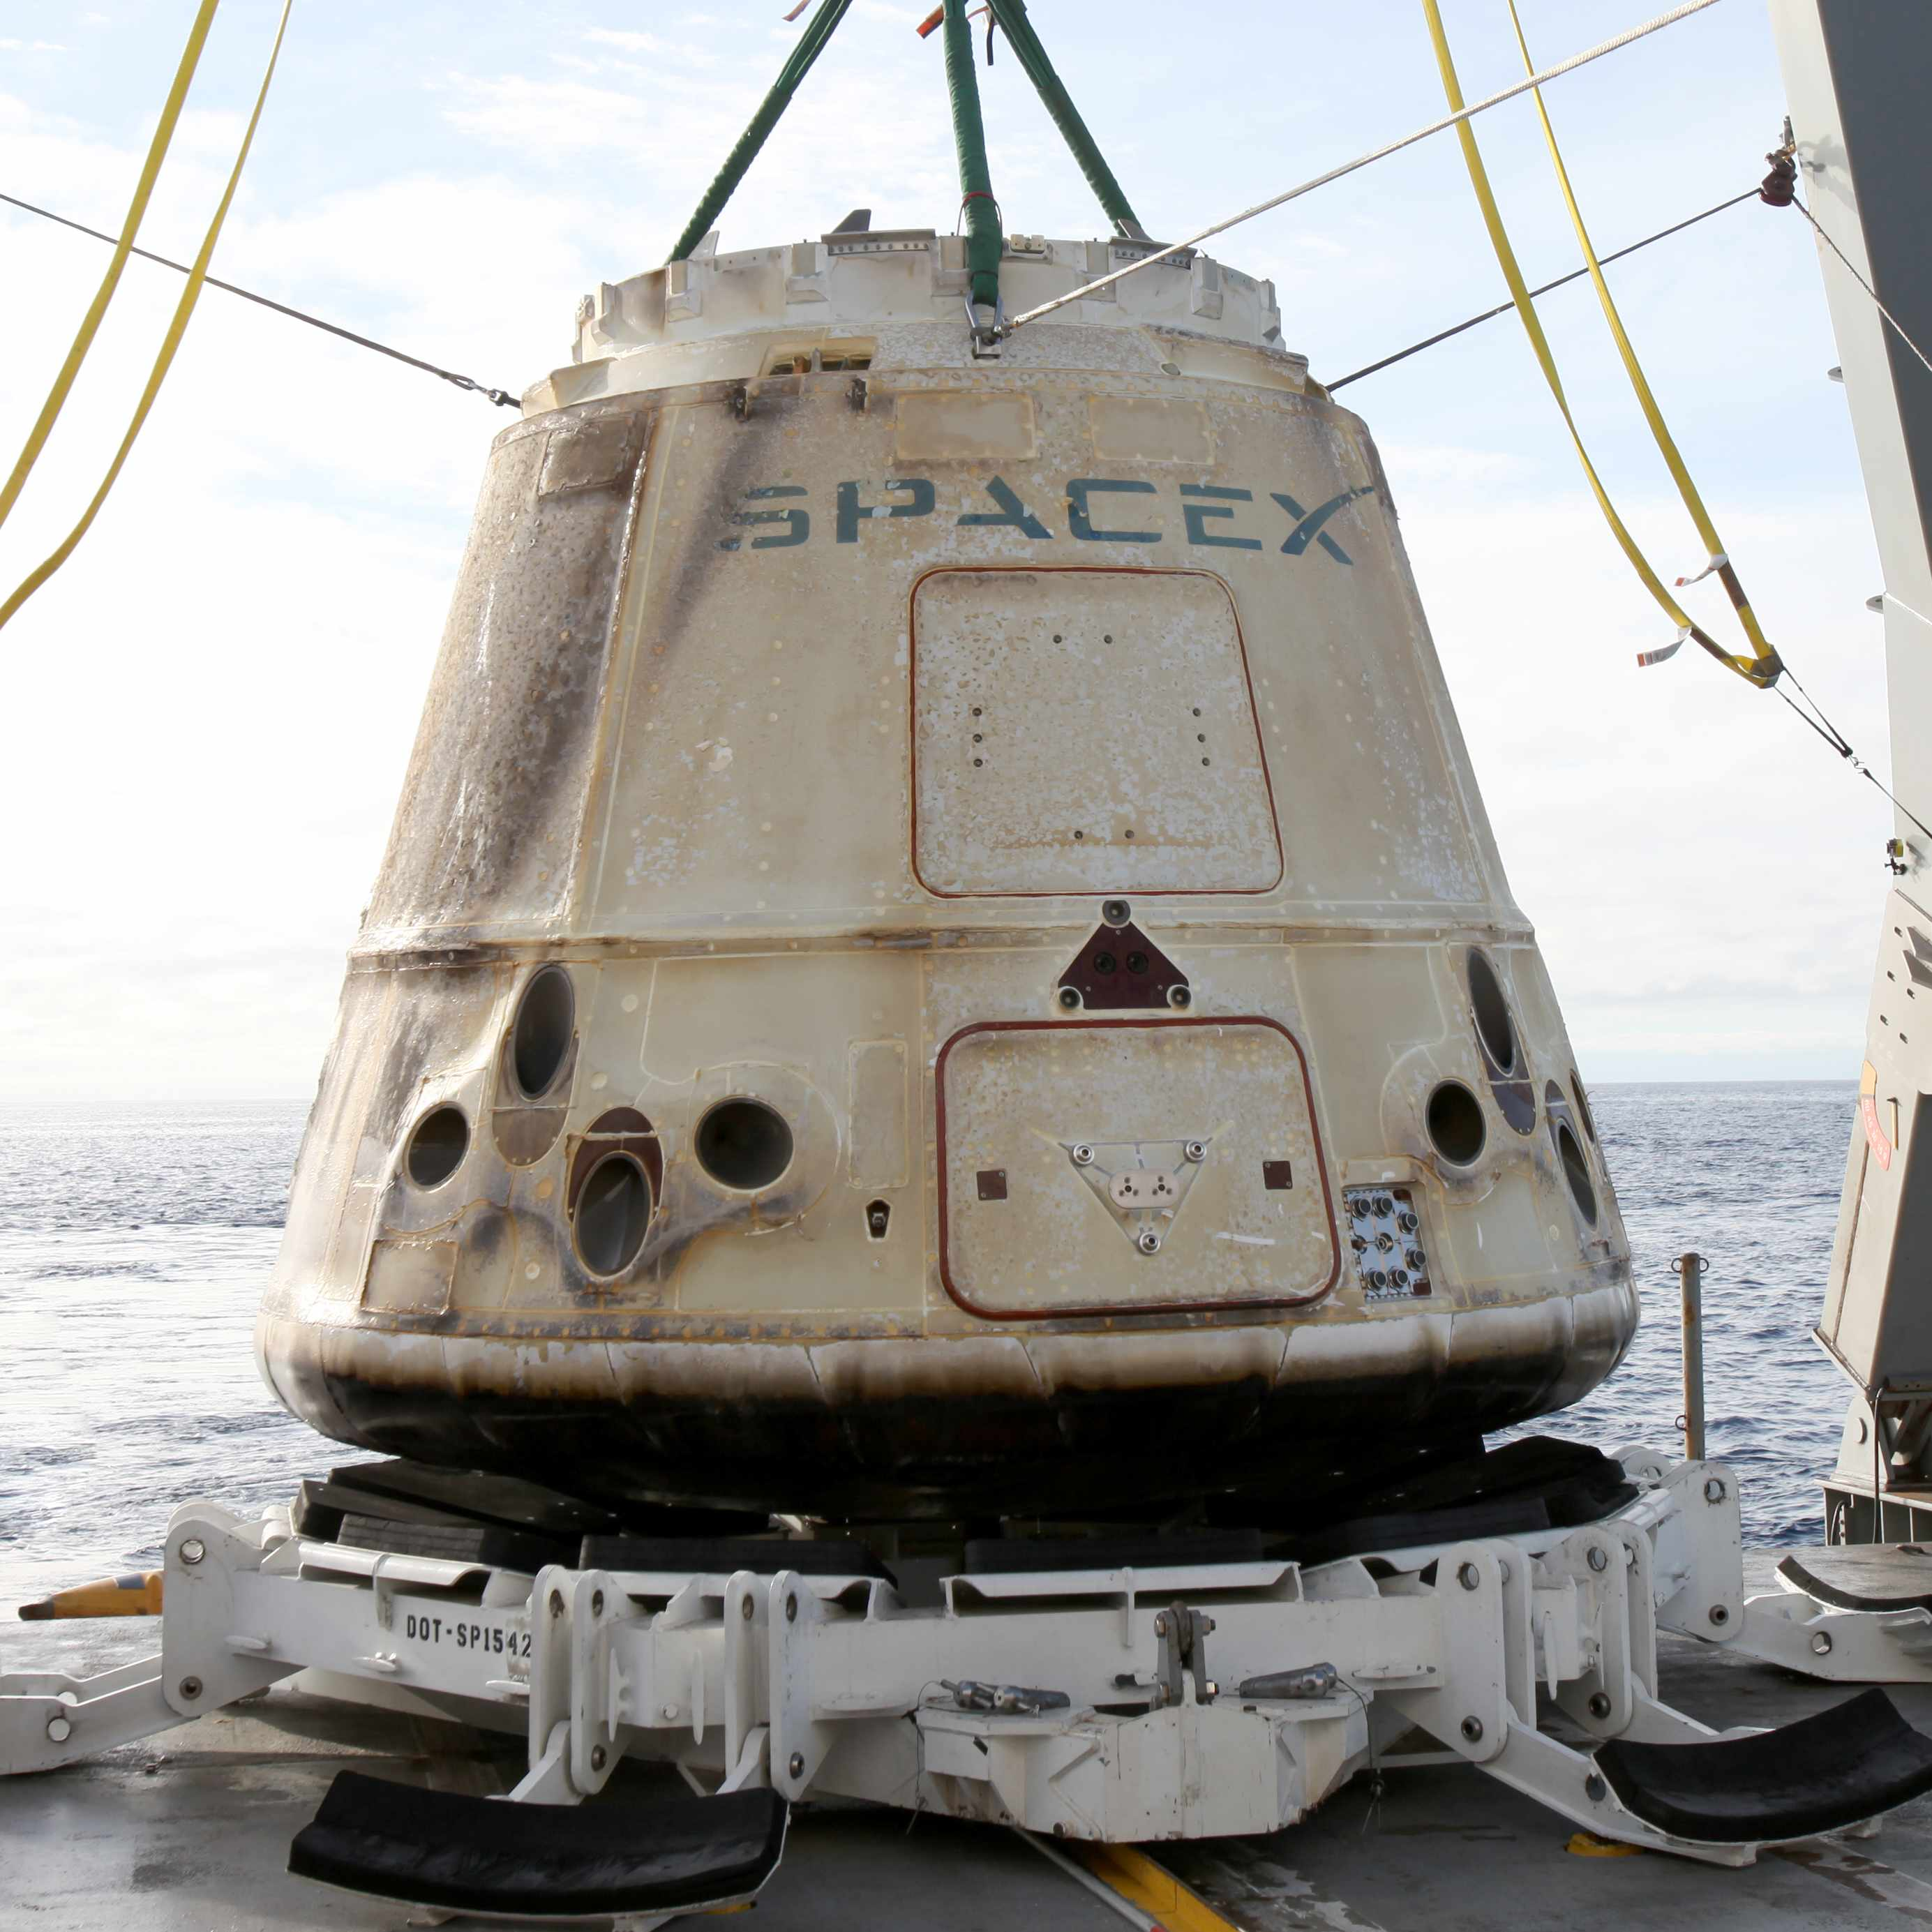 SpaceX Dragon landing with stem cell research